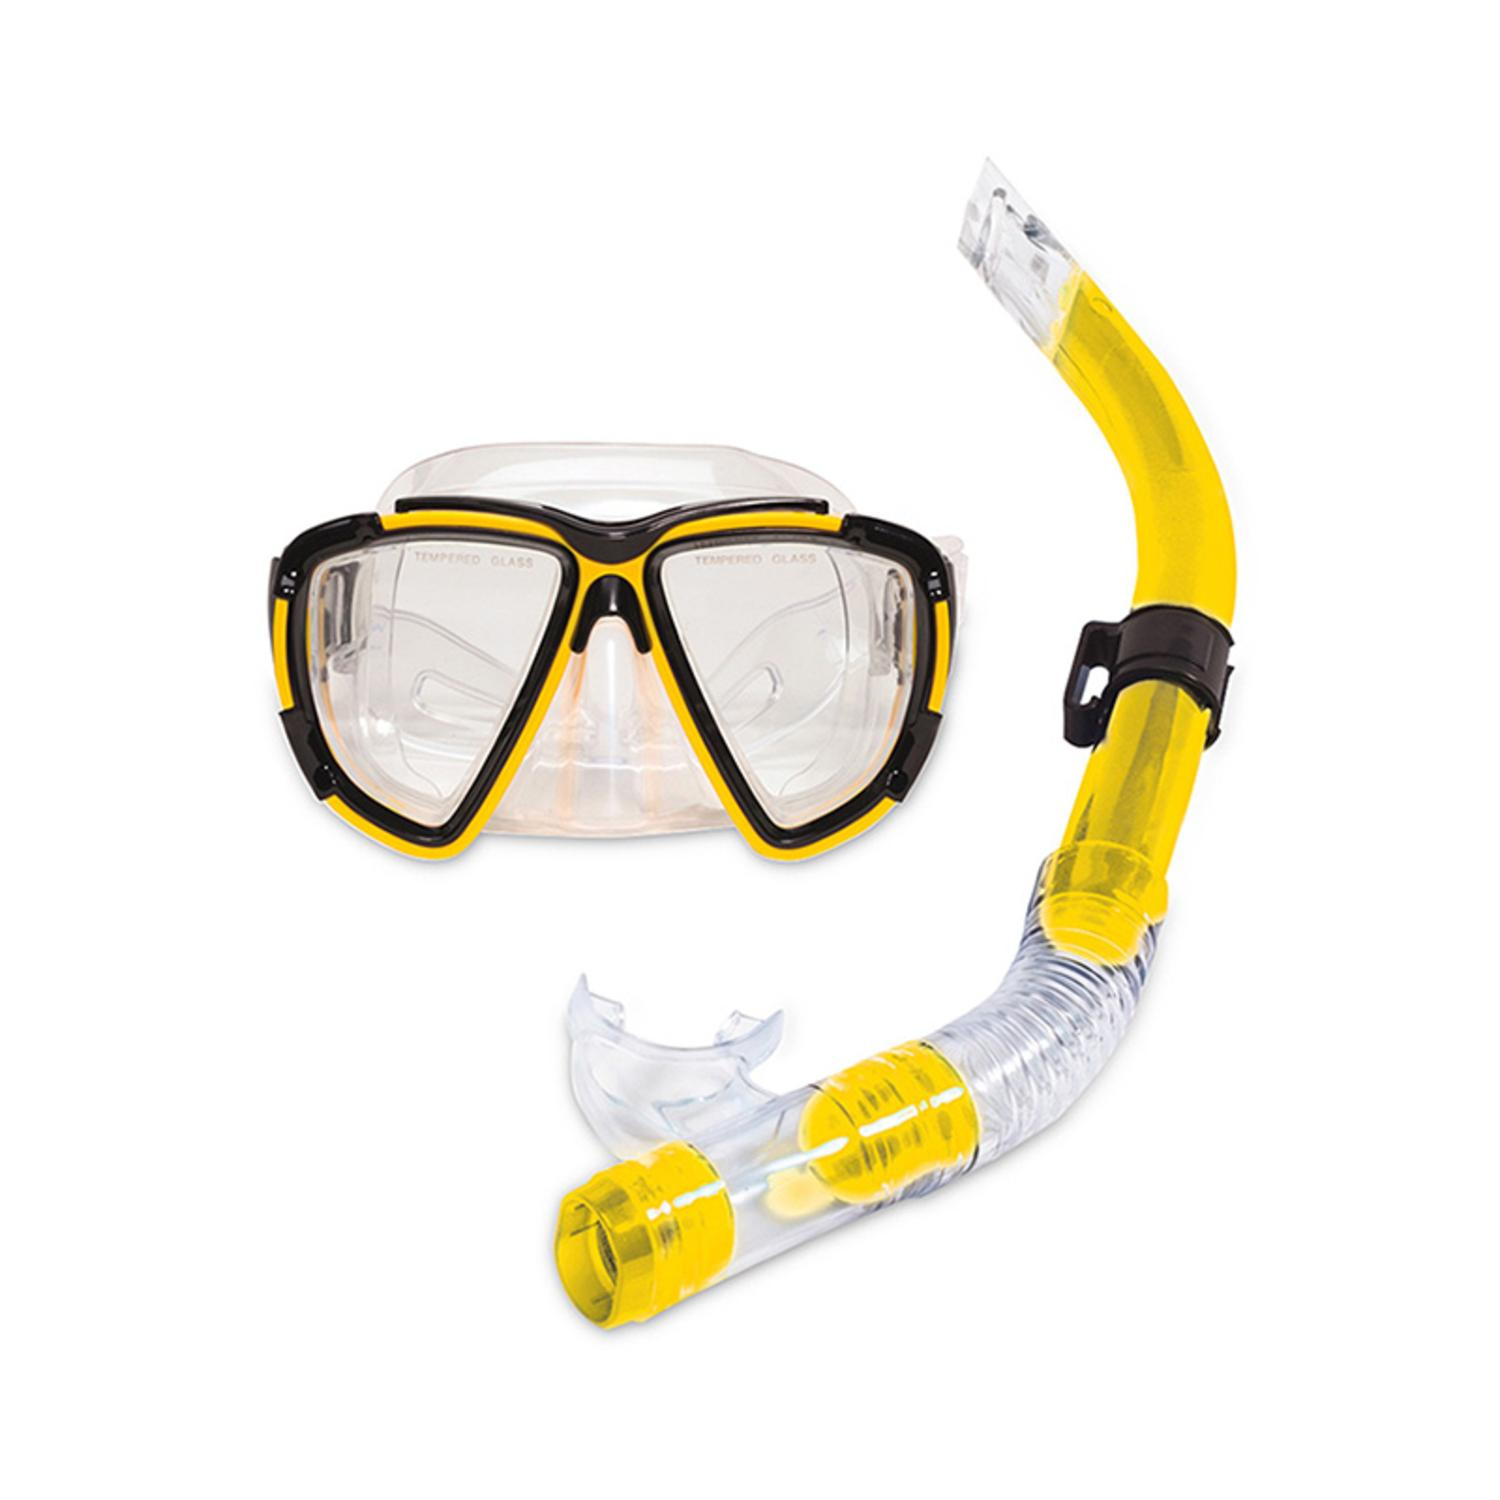 Yellow Kona Pro Teen or Adult Scuba Mask and Snorkel Dive Set by Swim Central